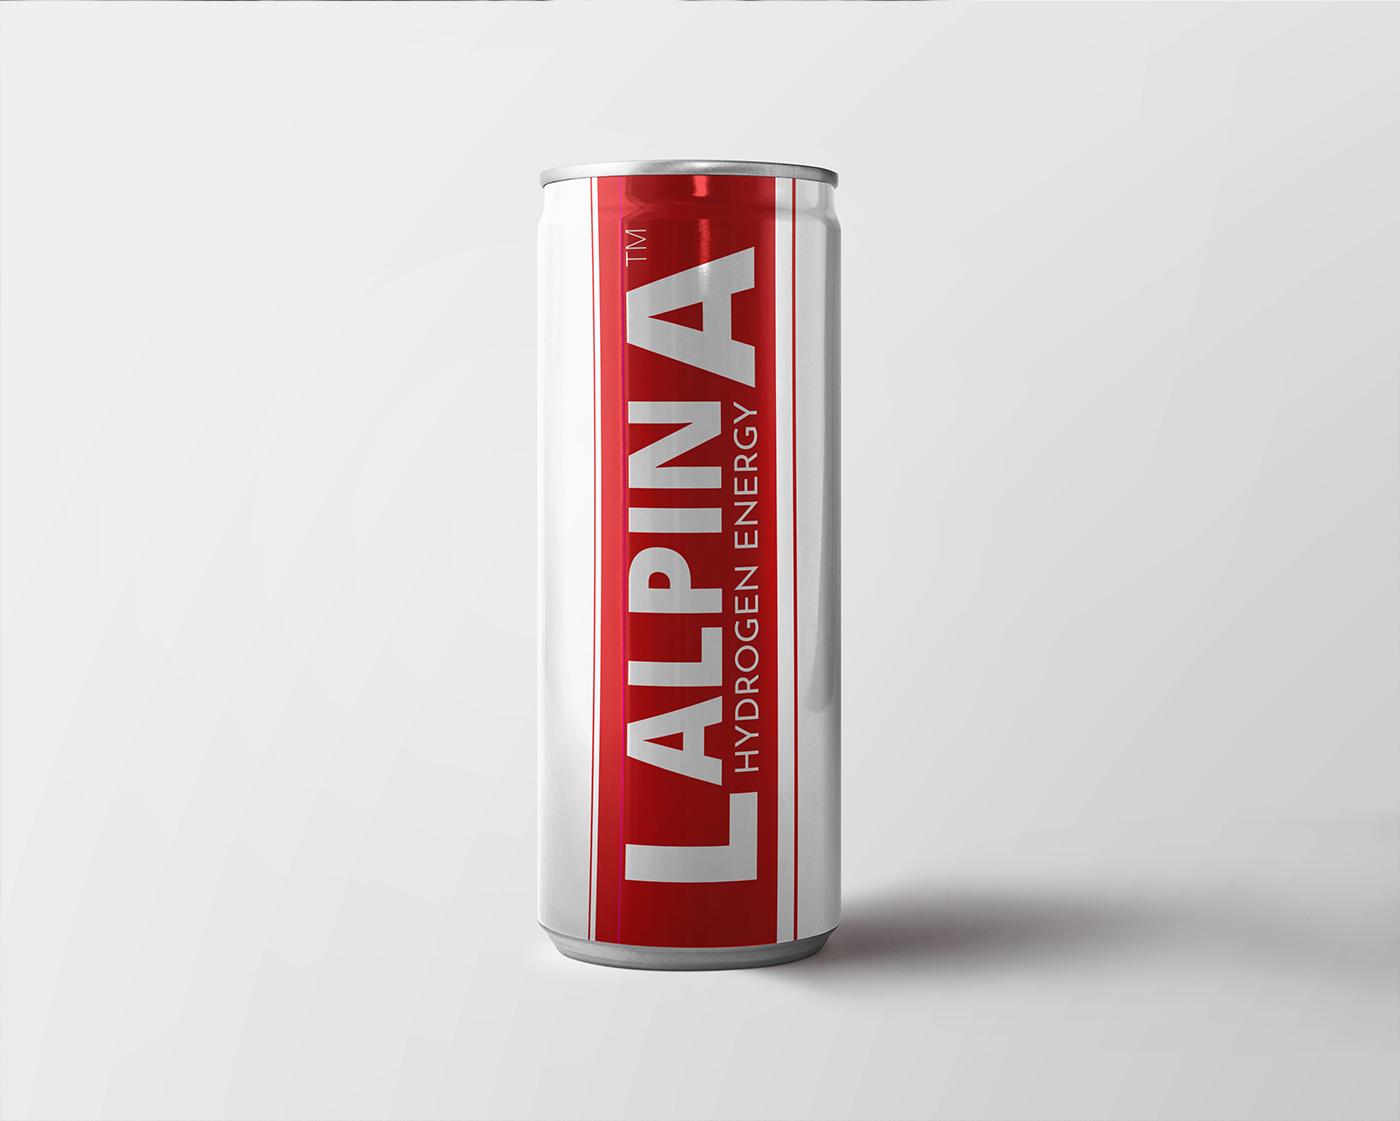 Lalpina Can – Packaging